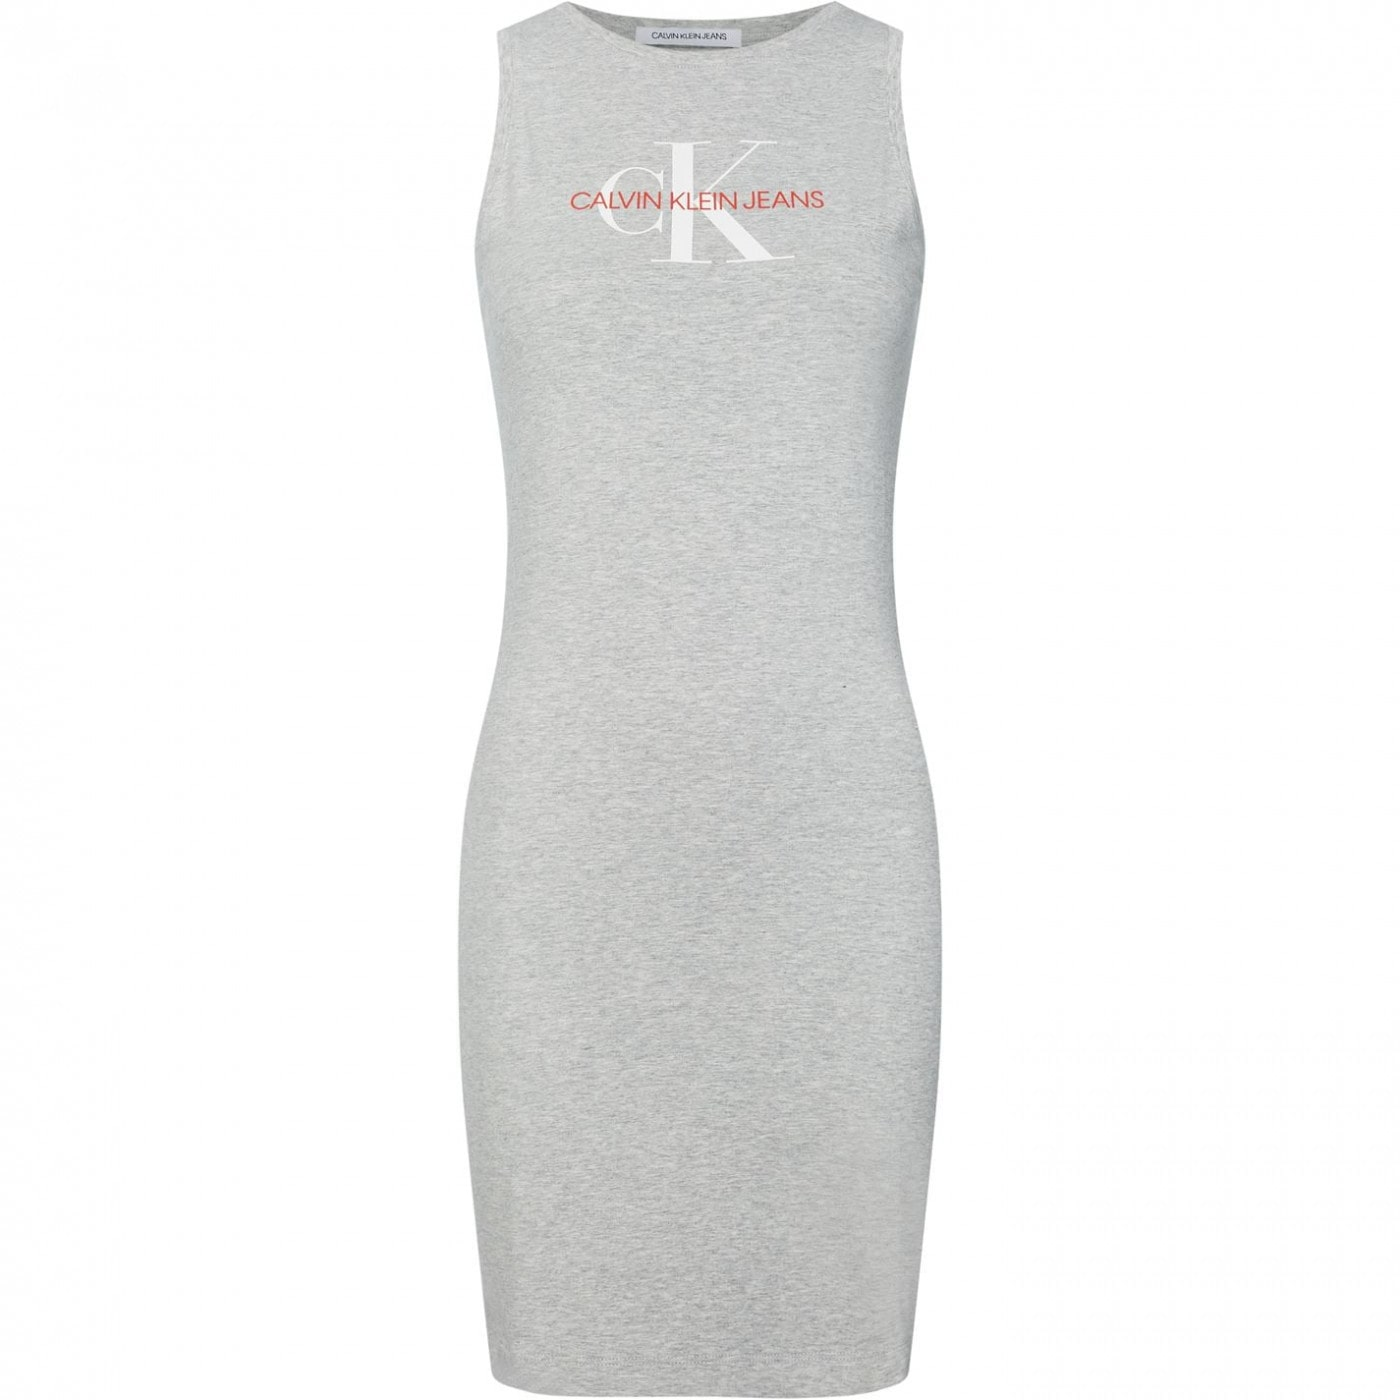 Calvin Klein Jeans Mono Tank Dress